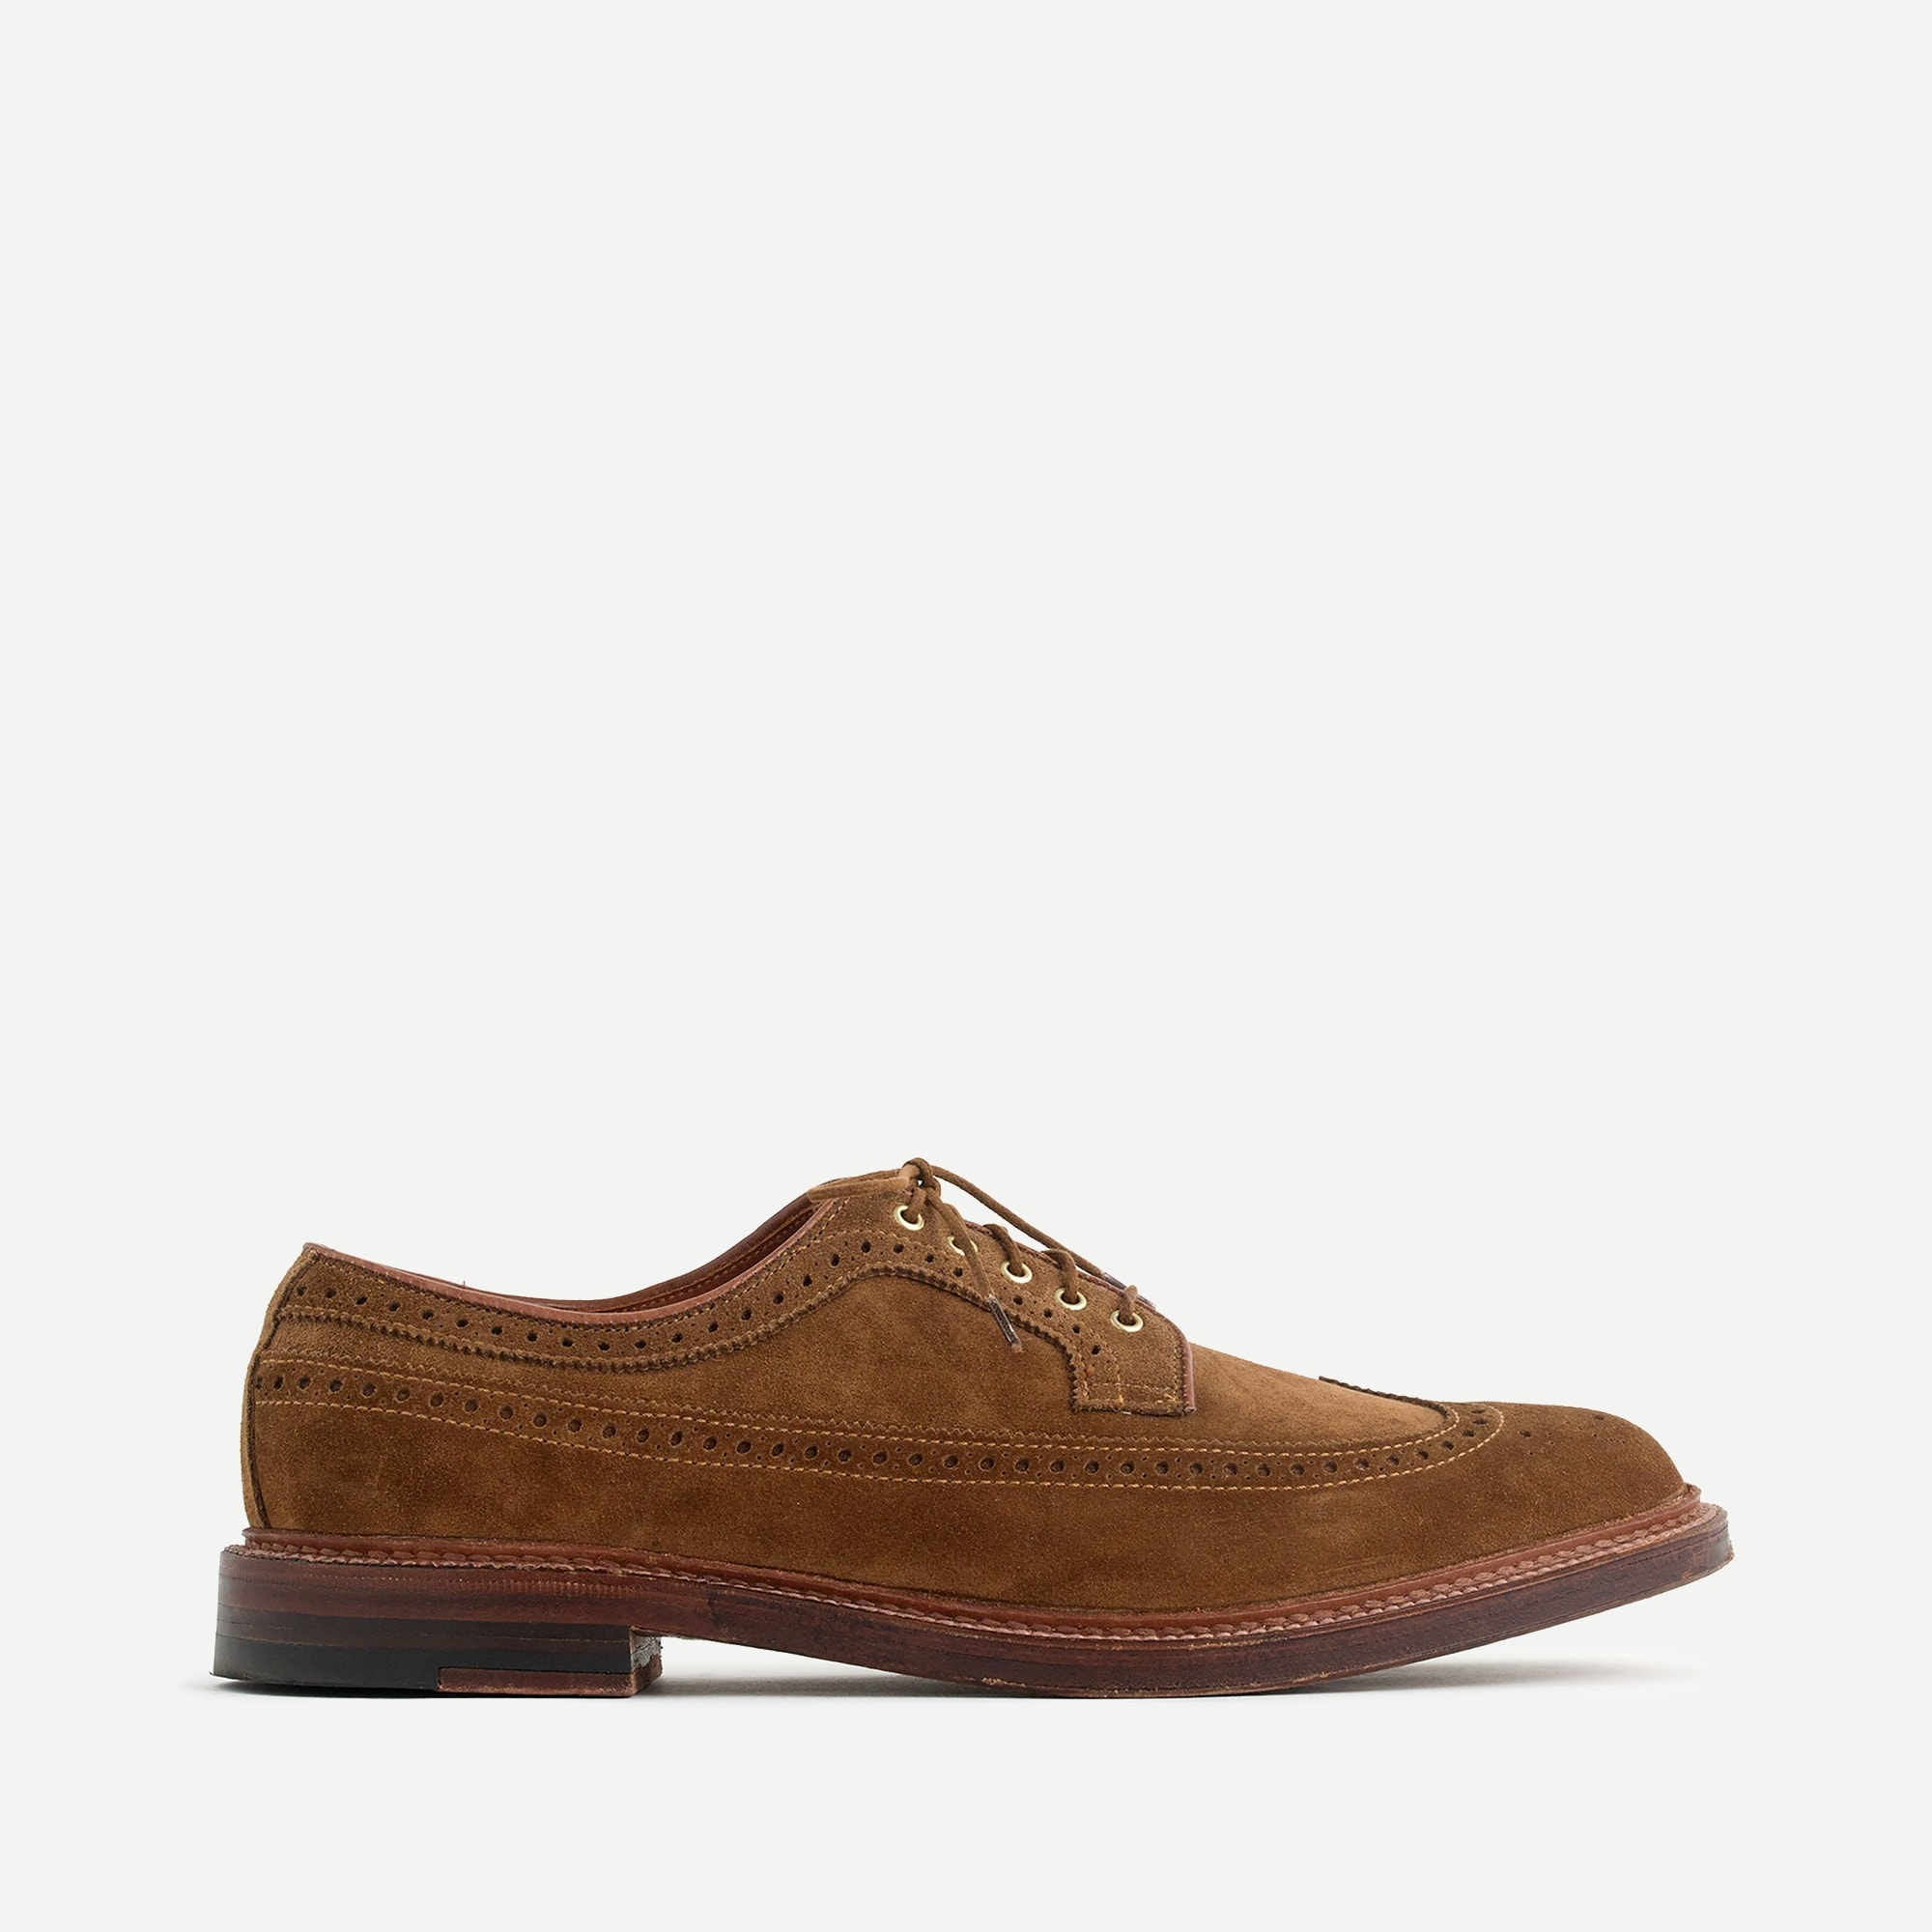 Image 3 for Alden® for J.Crew longwing bluchers in tan suede